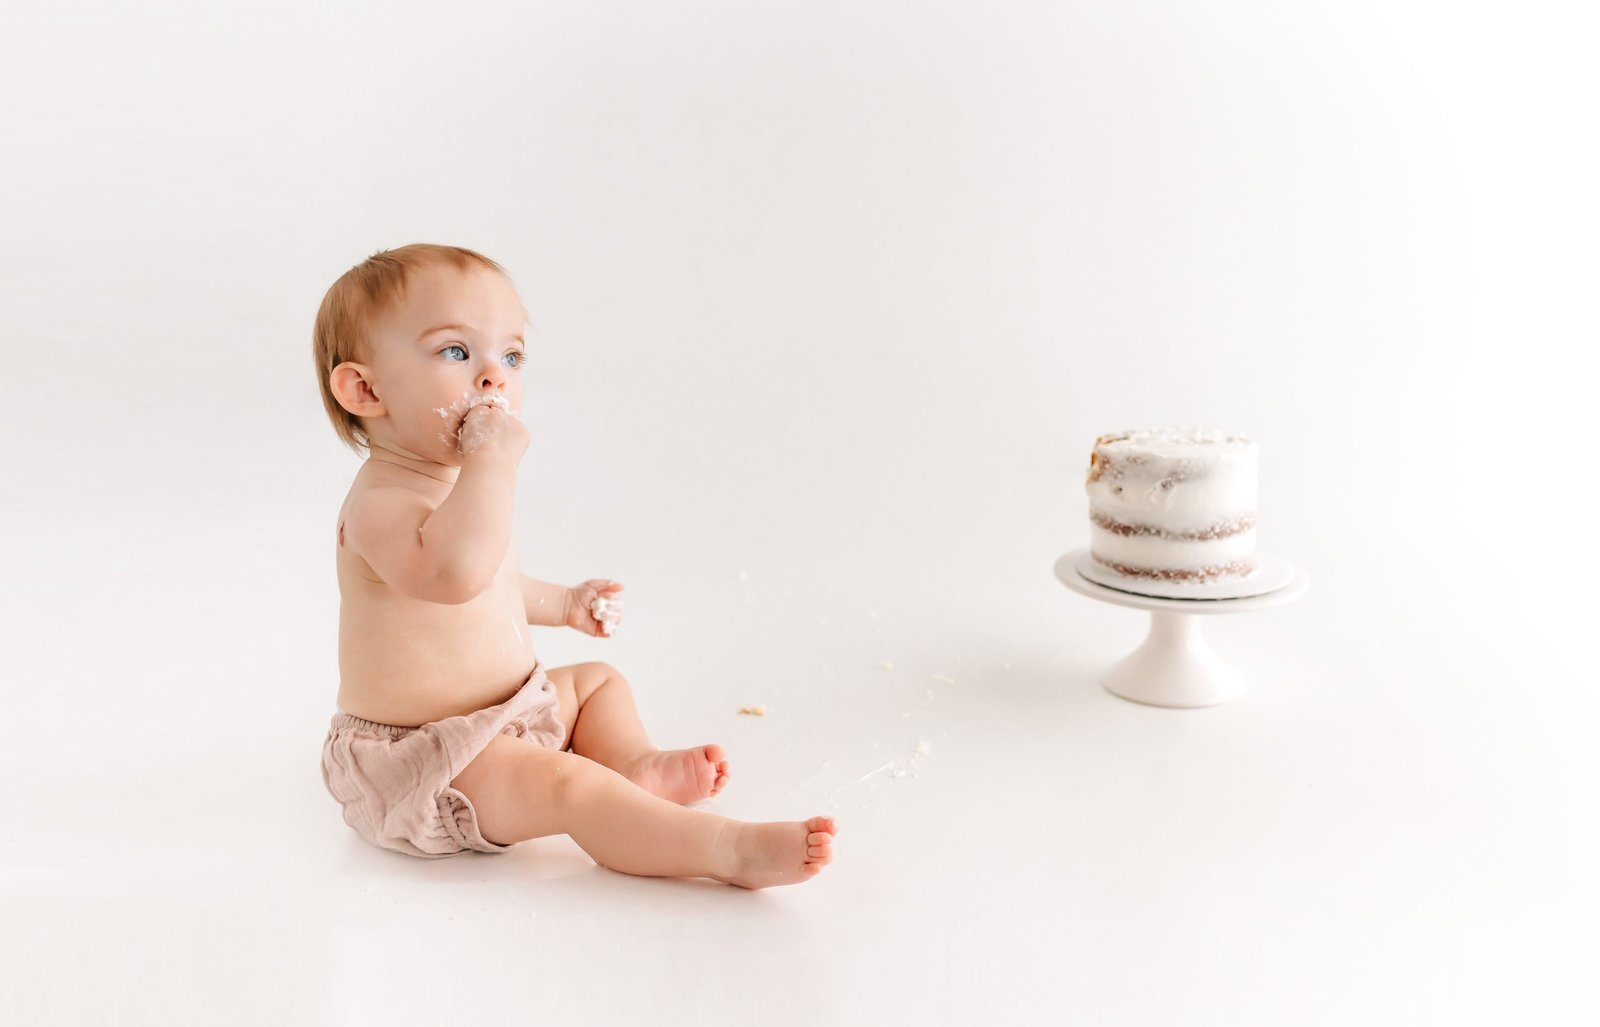 St_Louis_Baby_Photographer_Kelly_Laramore_Photography_100